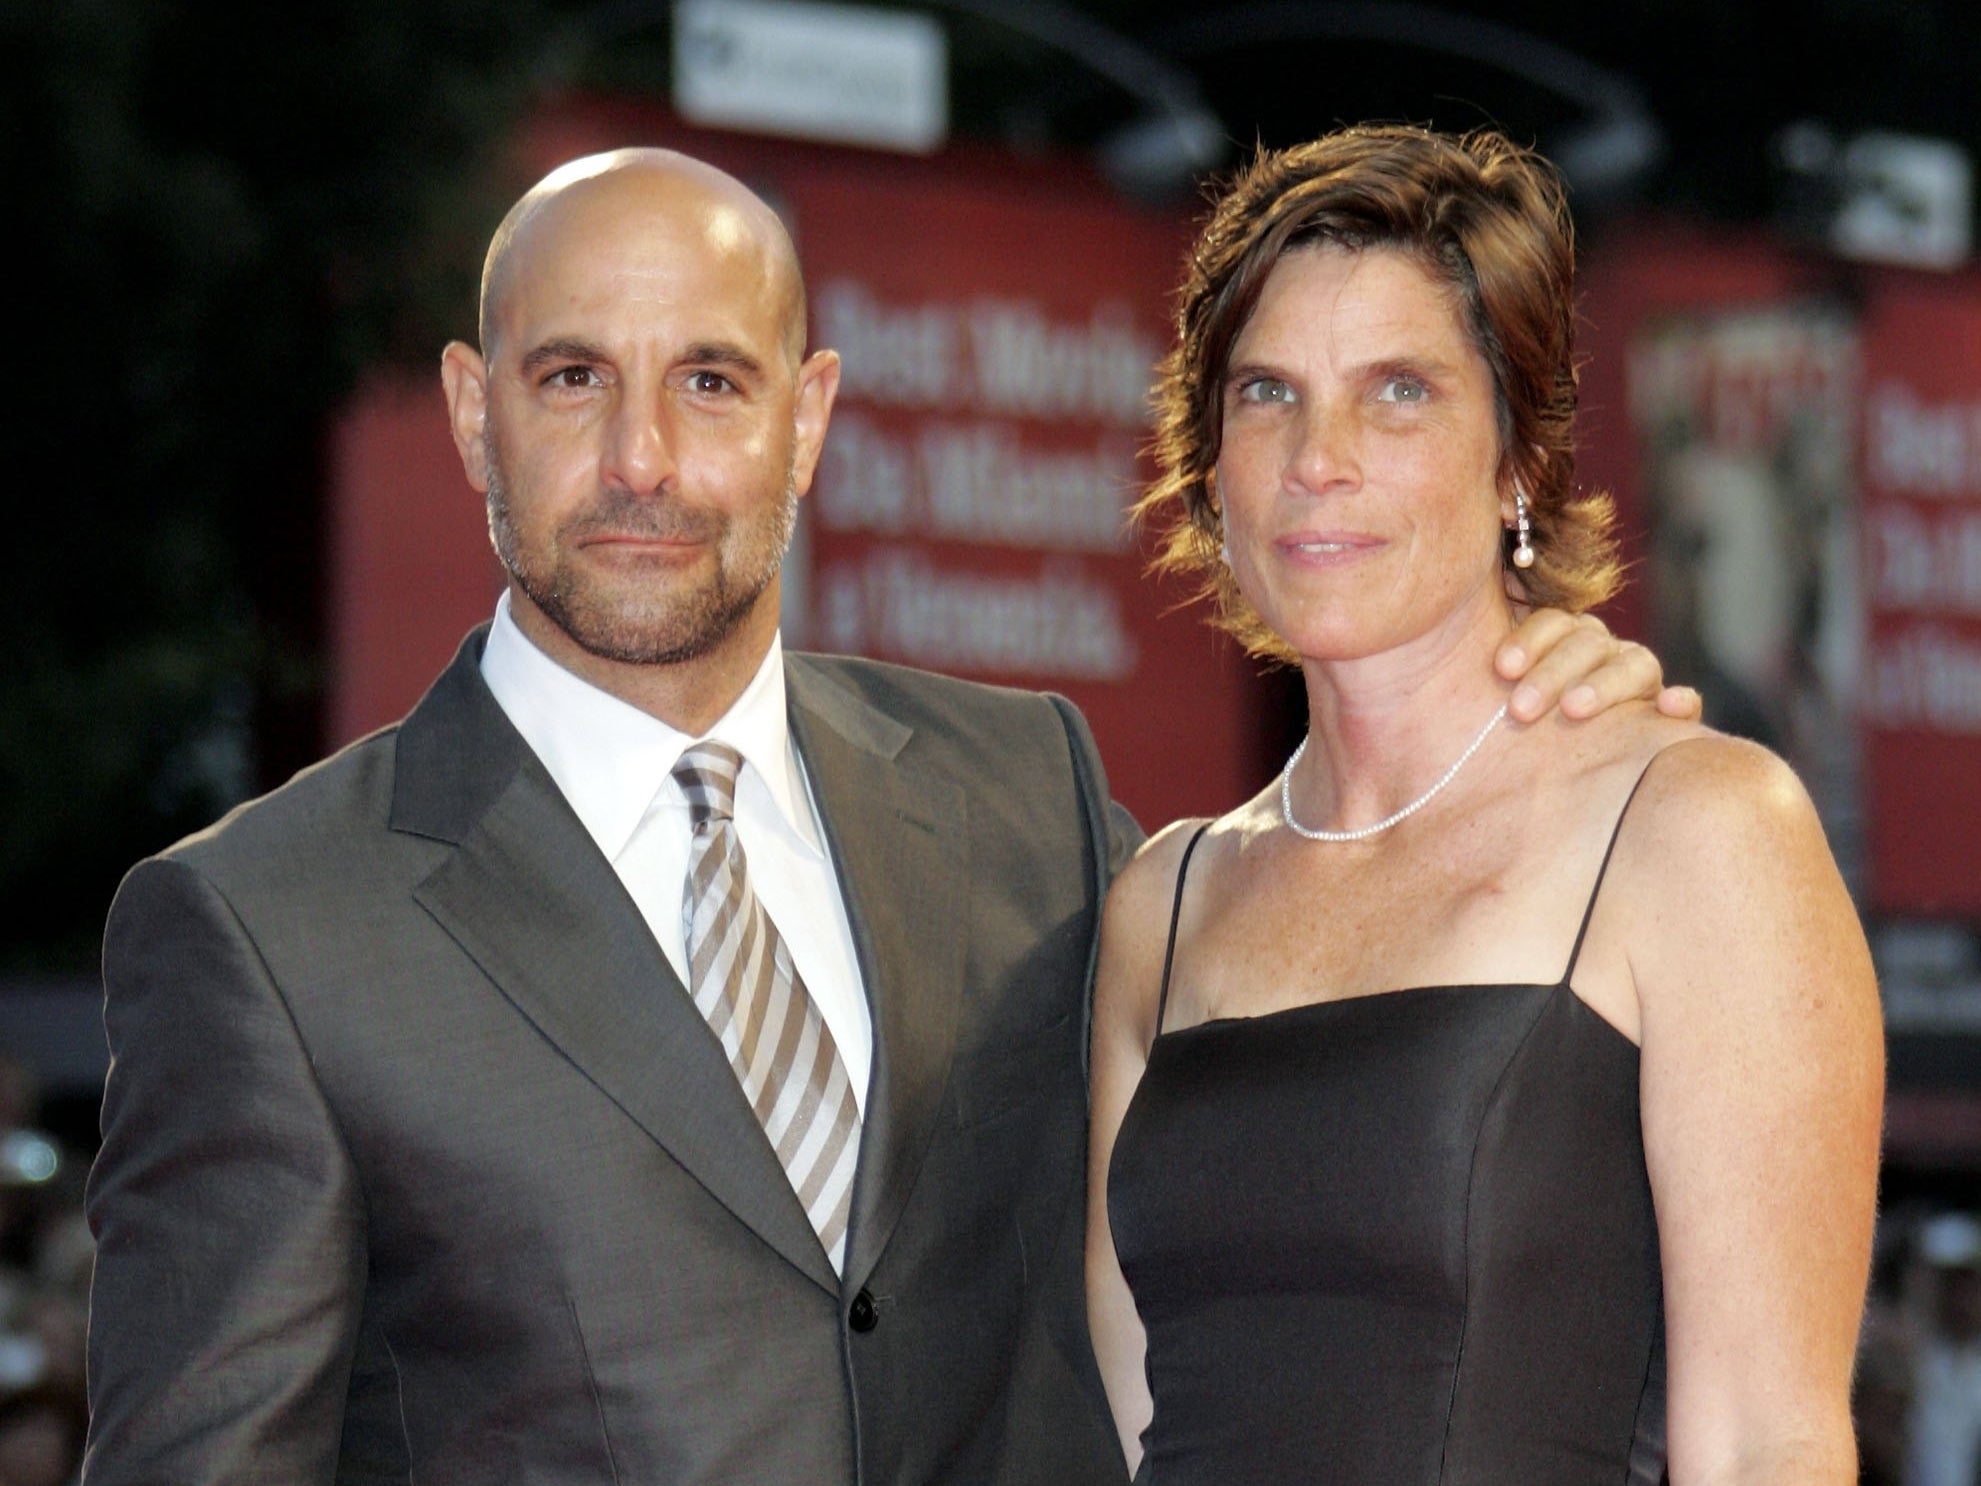 Stanley Tucci opens up about death of first wife: 'I'm still grieving'